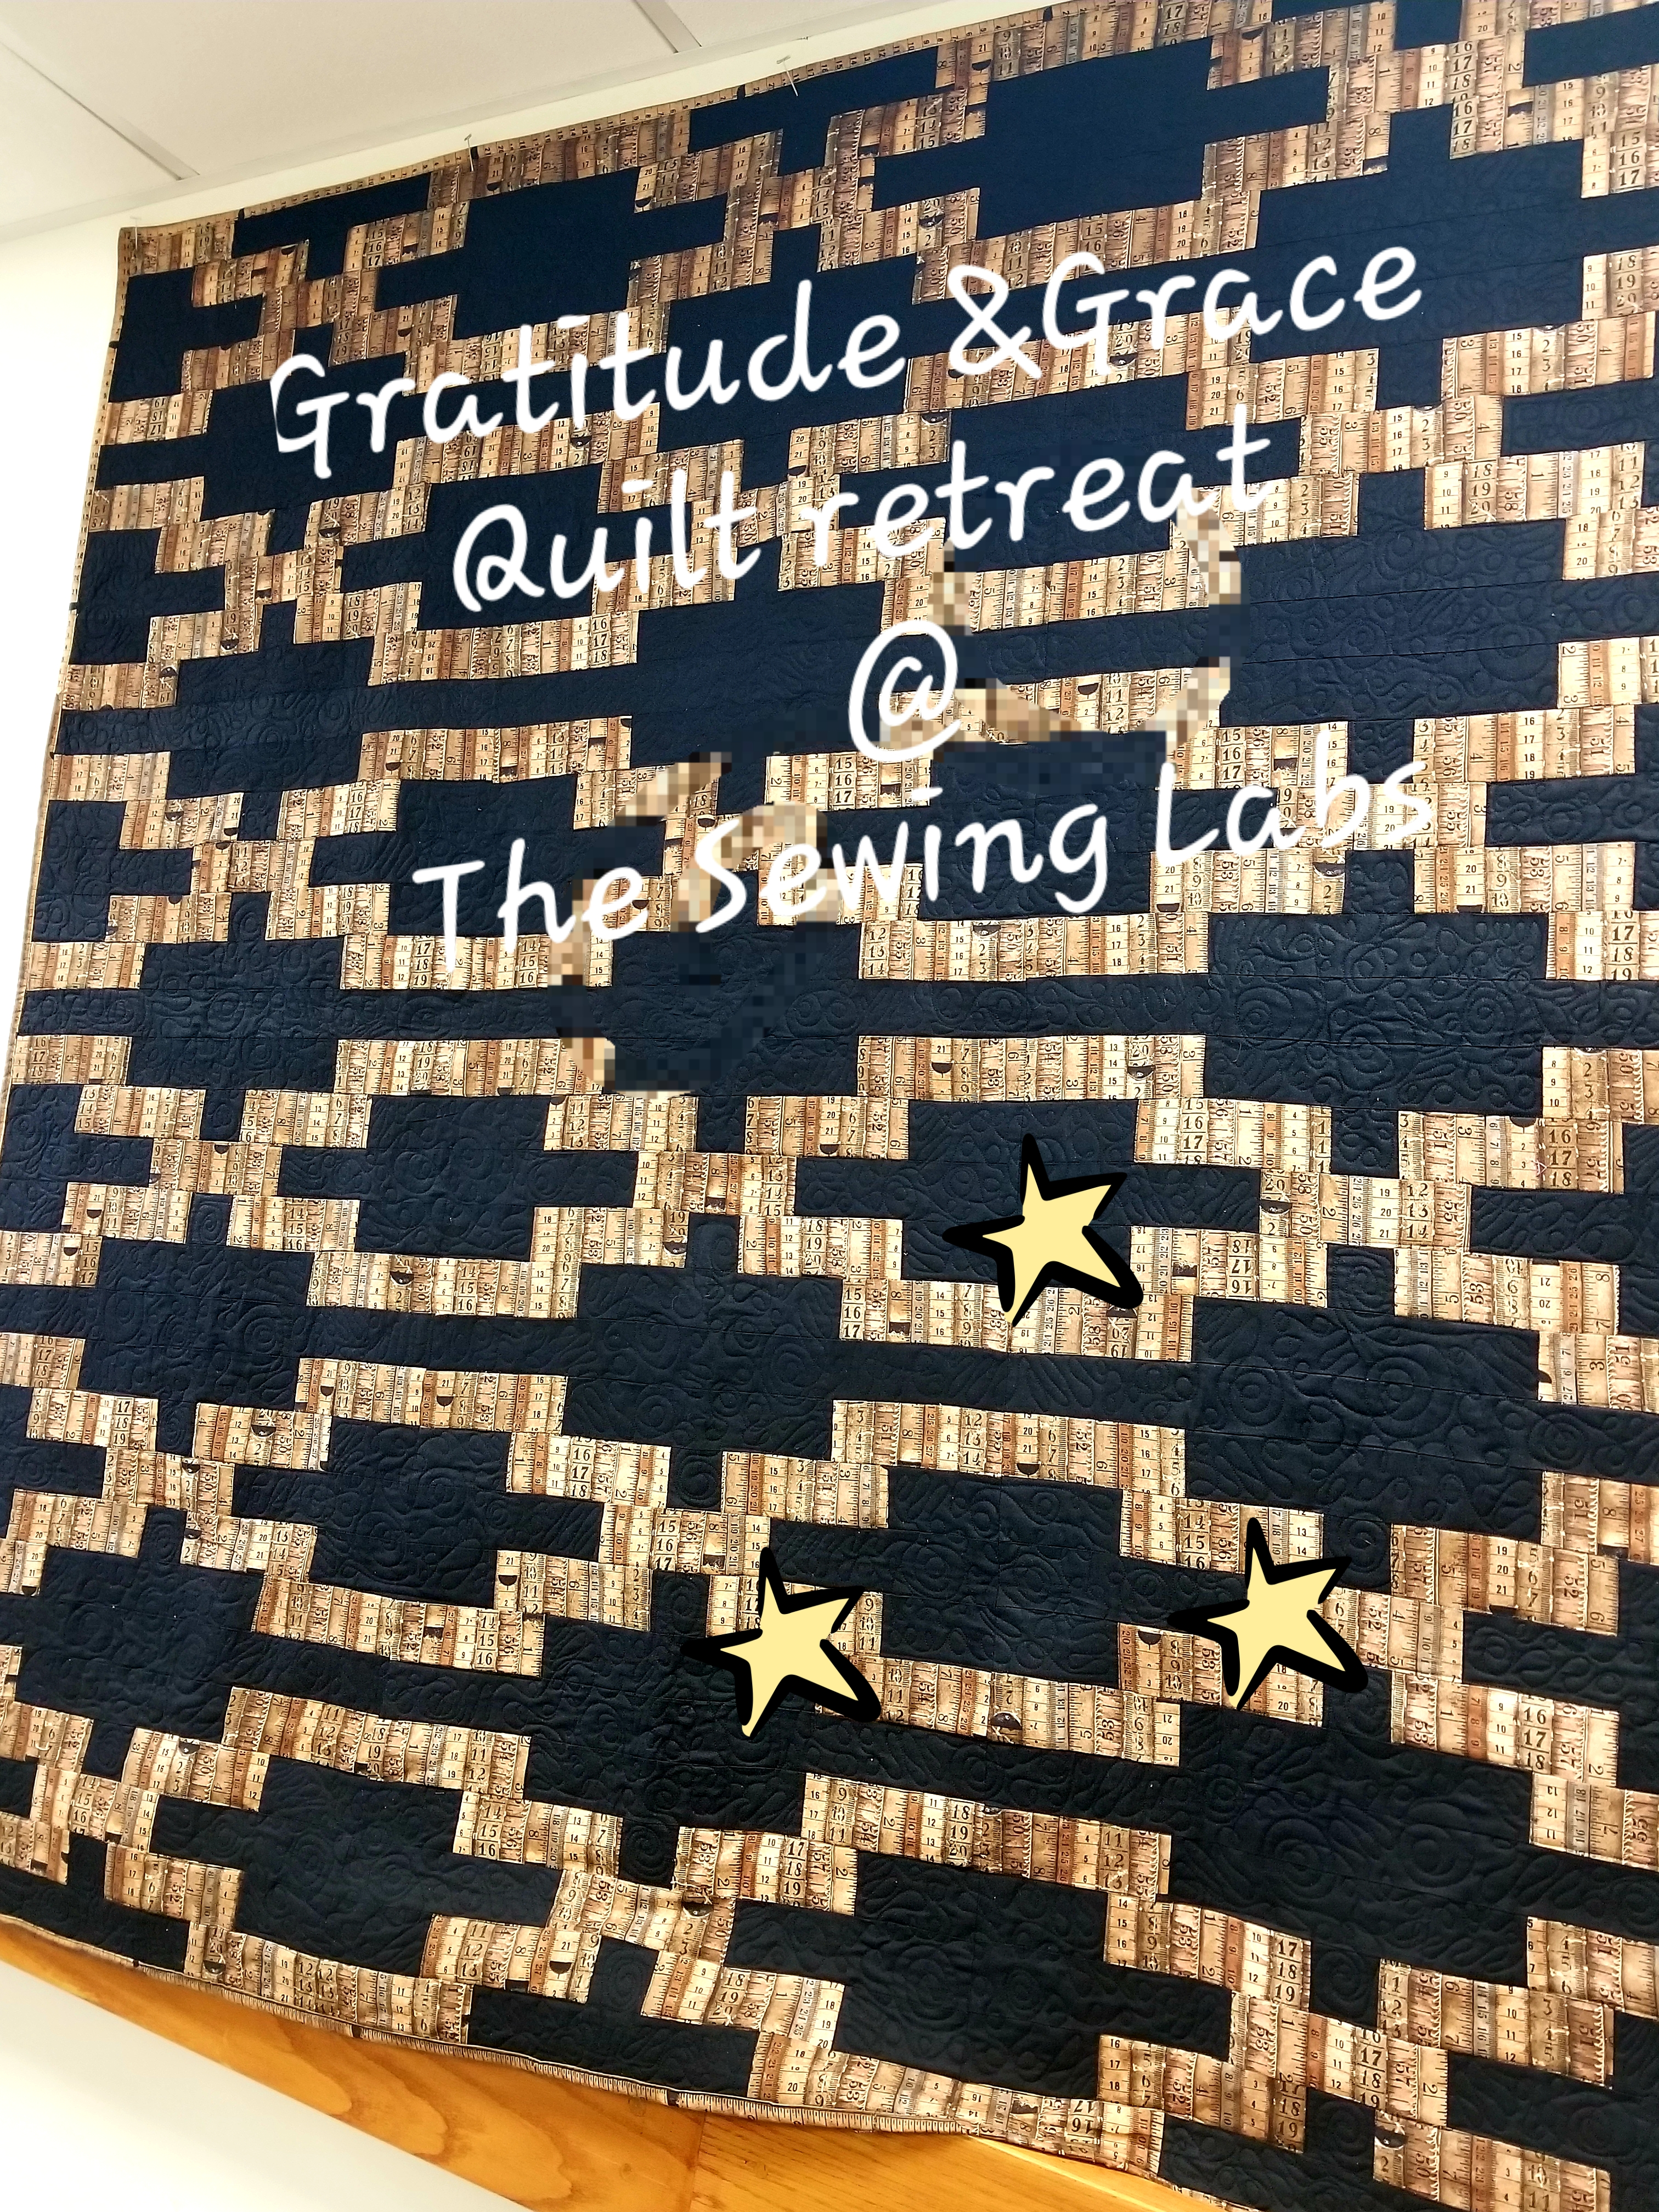 Gratitude & Grace Quilting Retreat